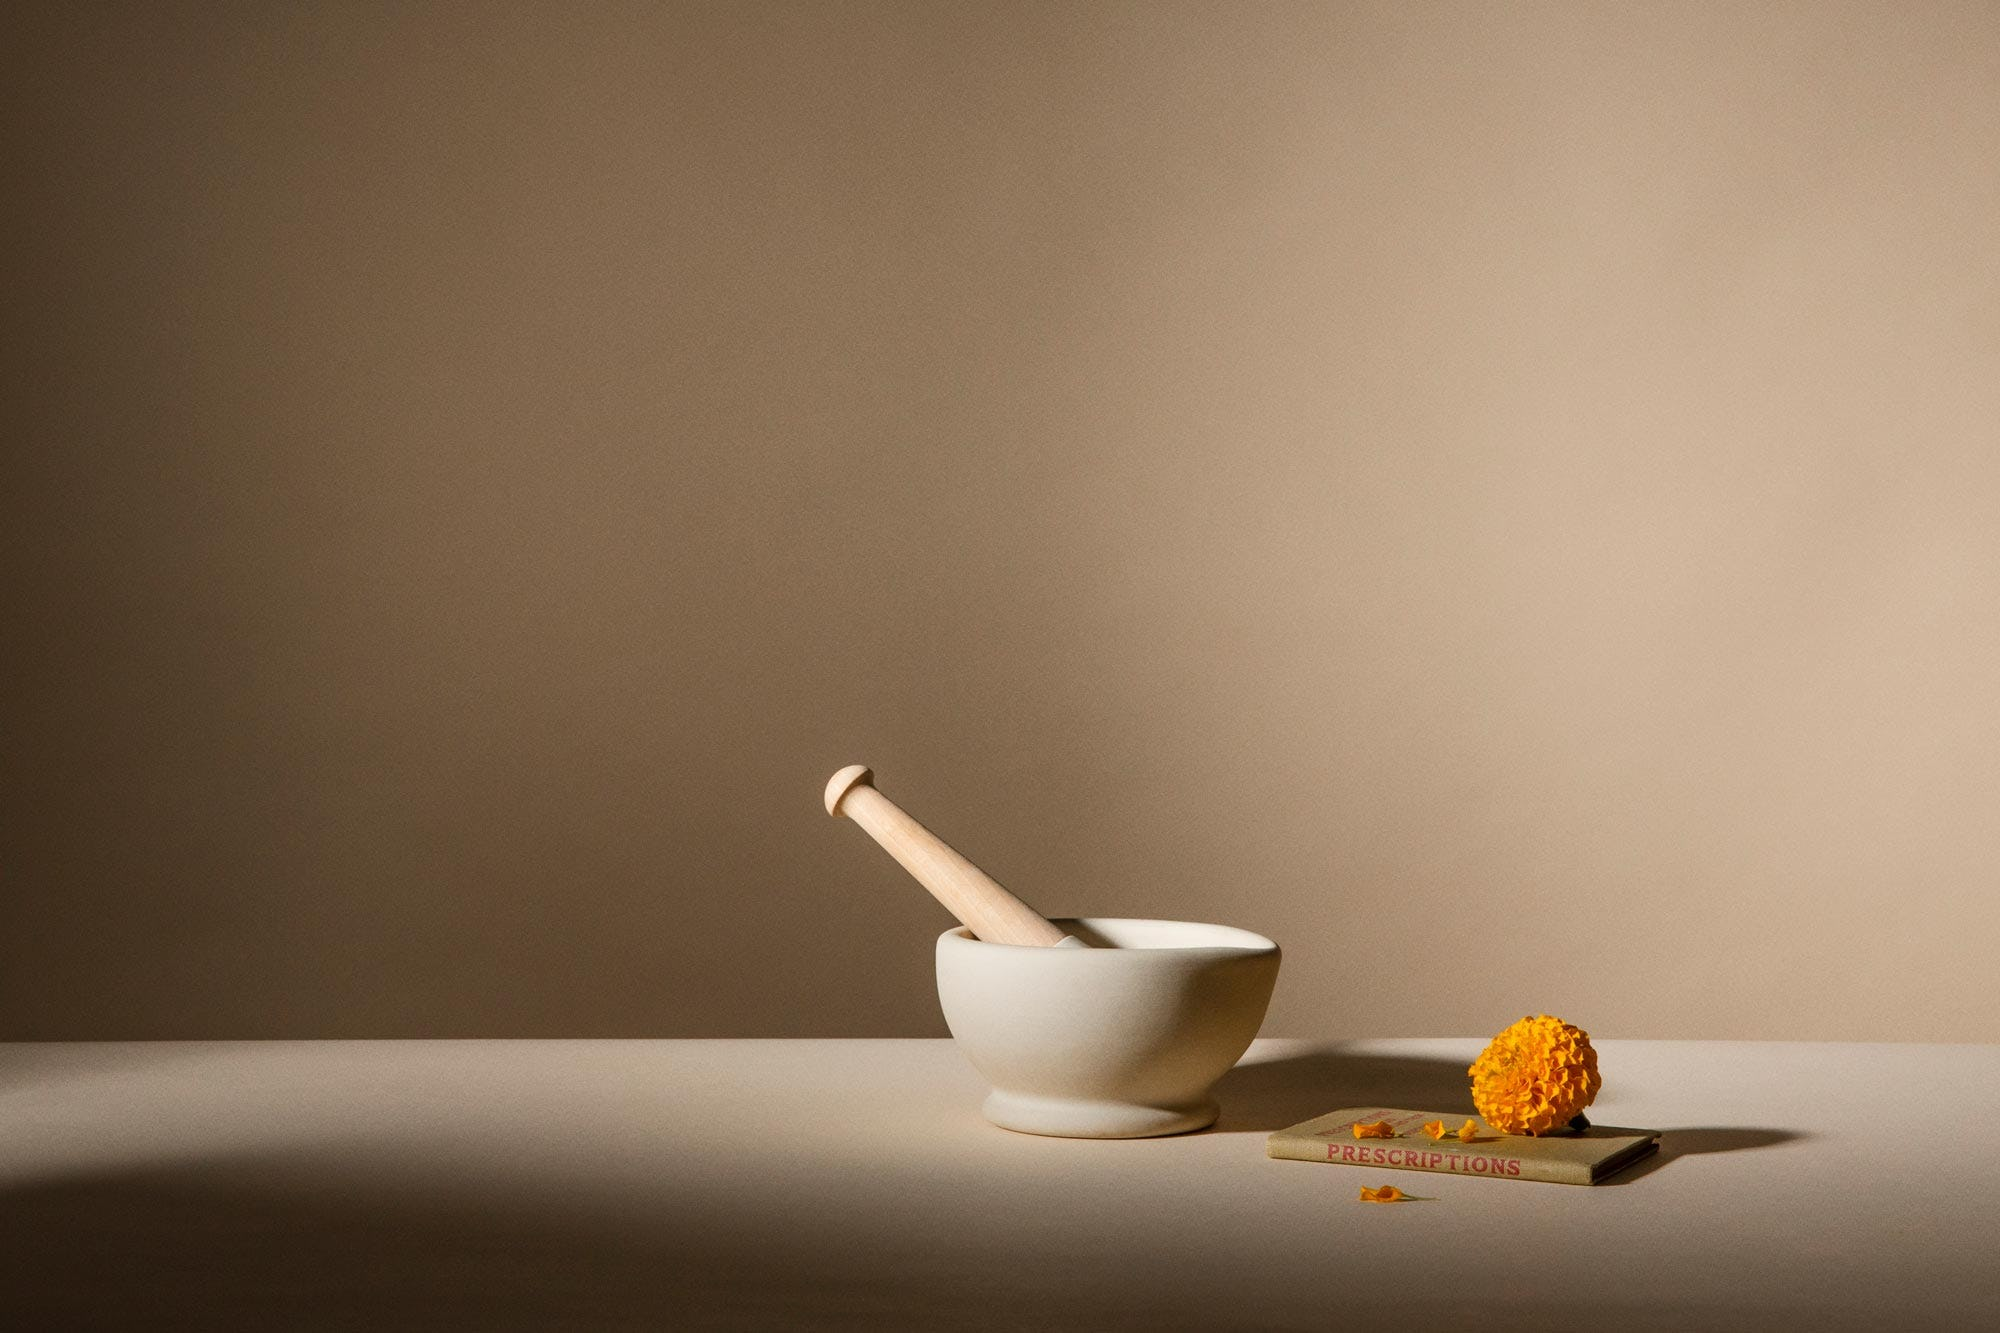 Pestle and mortar next to a flower